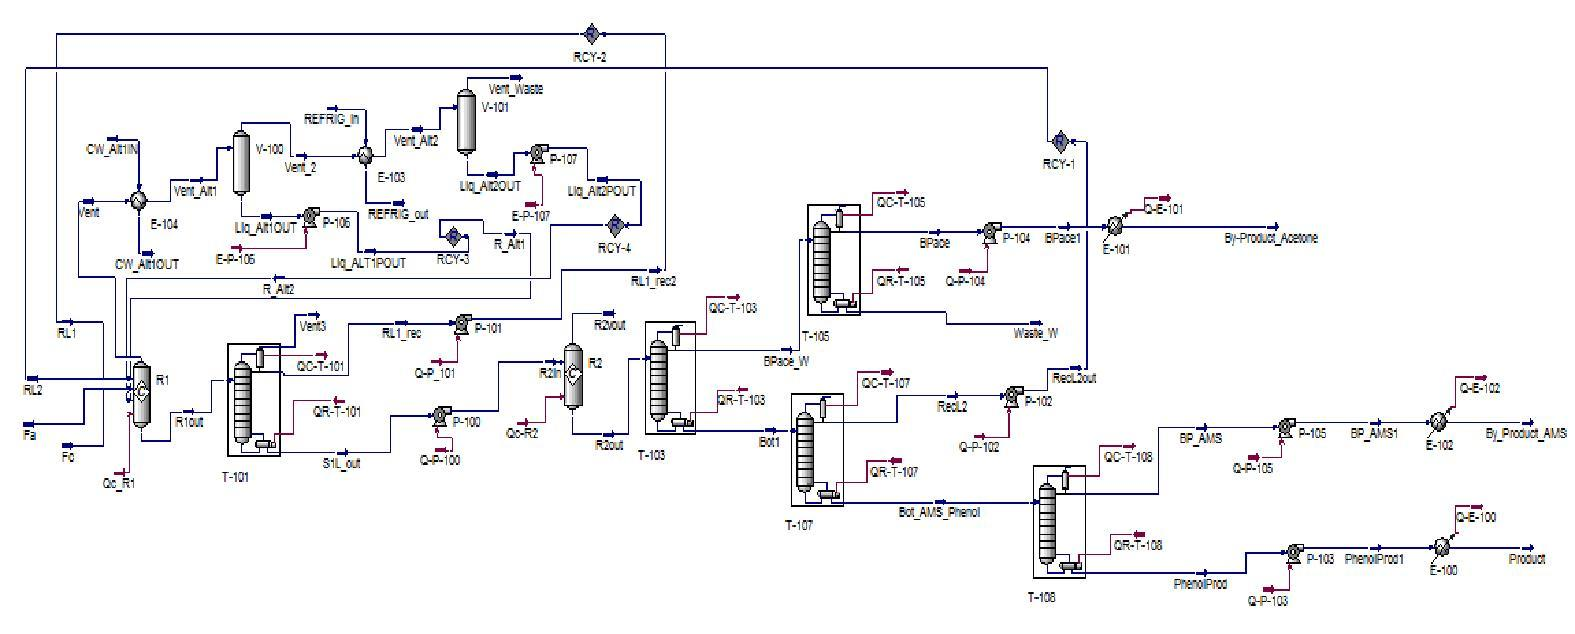 hight resolution of aspen process flow diagram